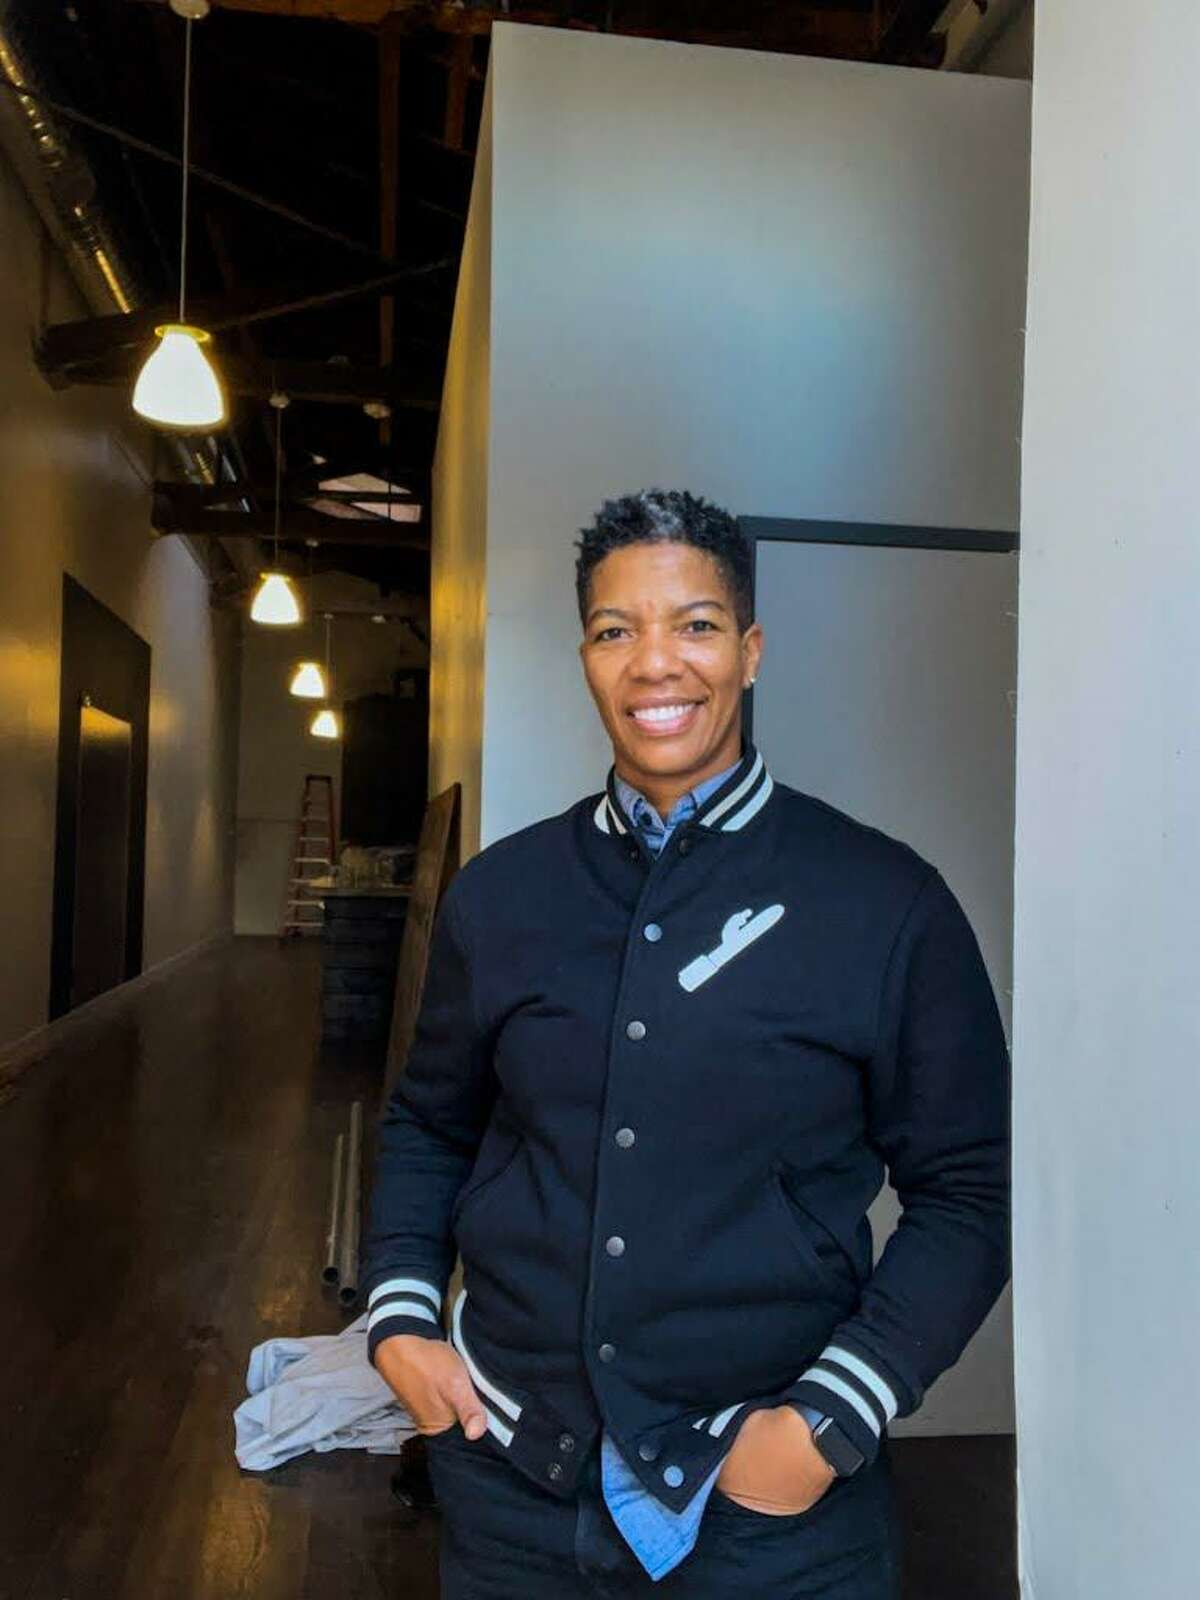 Nenna Joiner, owner of Feelmore sex shops in Oakland and Berkeley, is opening a new bar, the Feelmore Social Club.